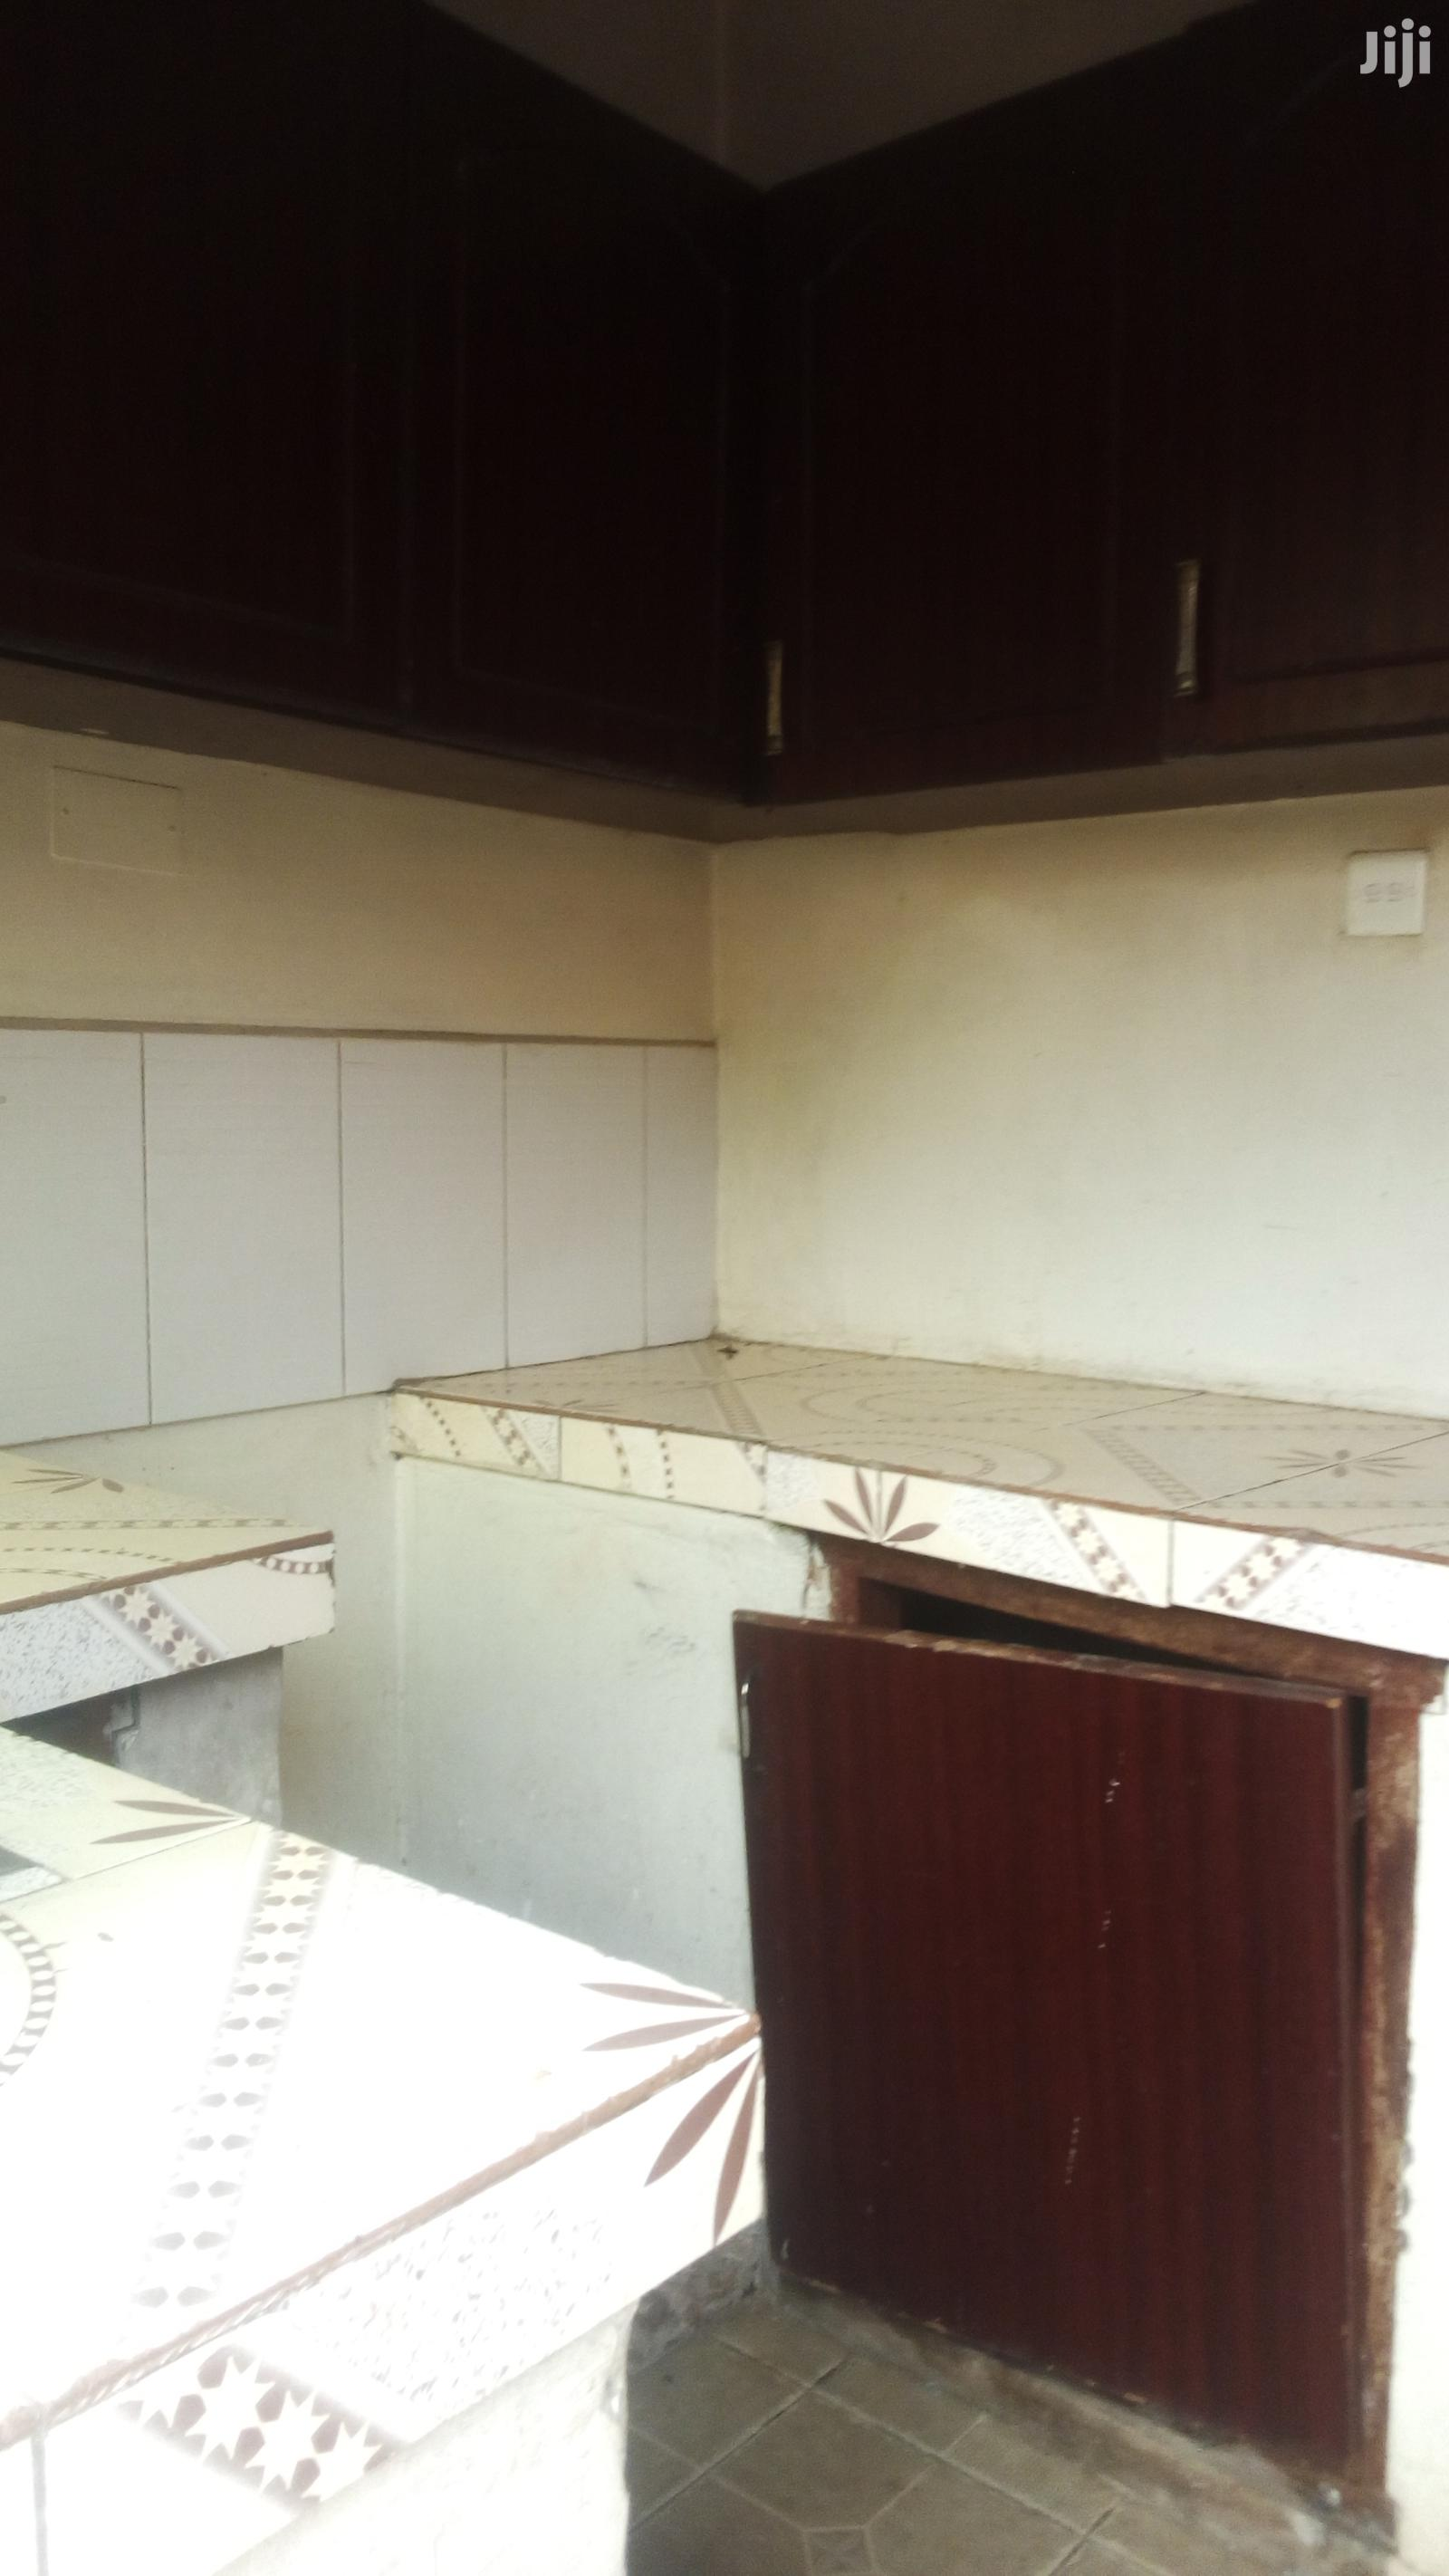 Single Room House For Rent In Naalya | Houses & Apartments For Rent for sale in Kampala, Central Region, Uganda